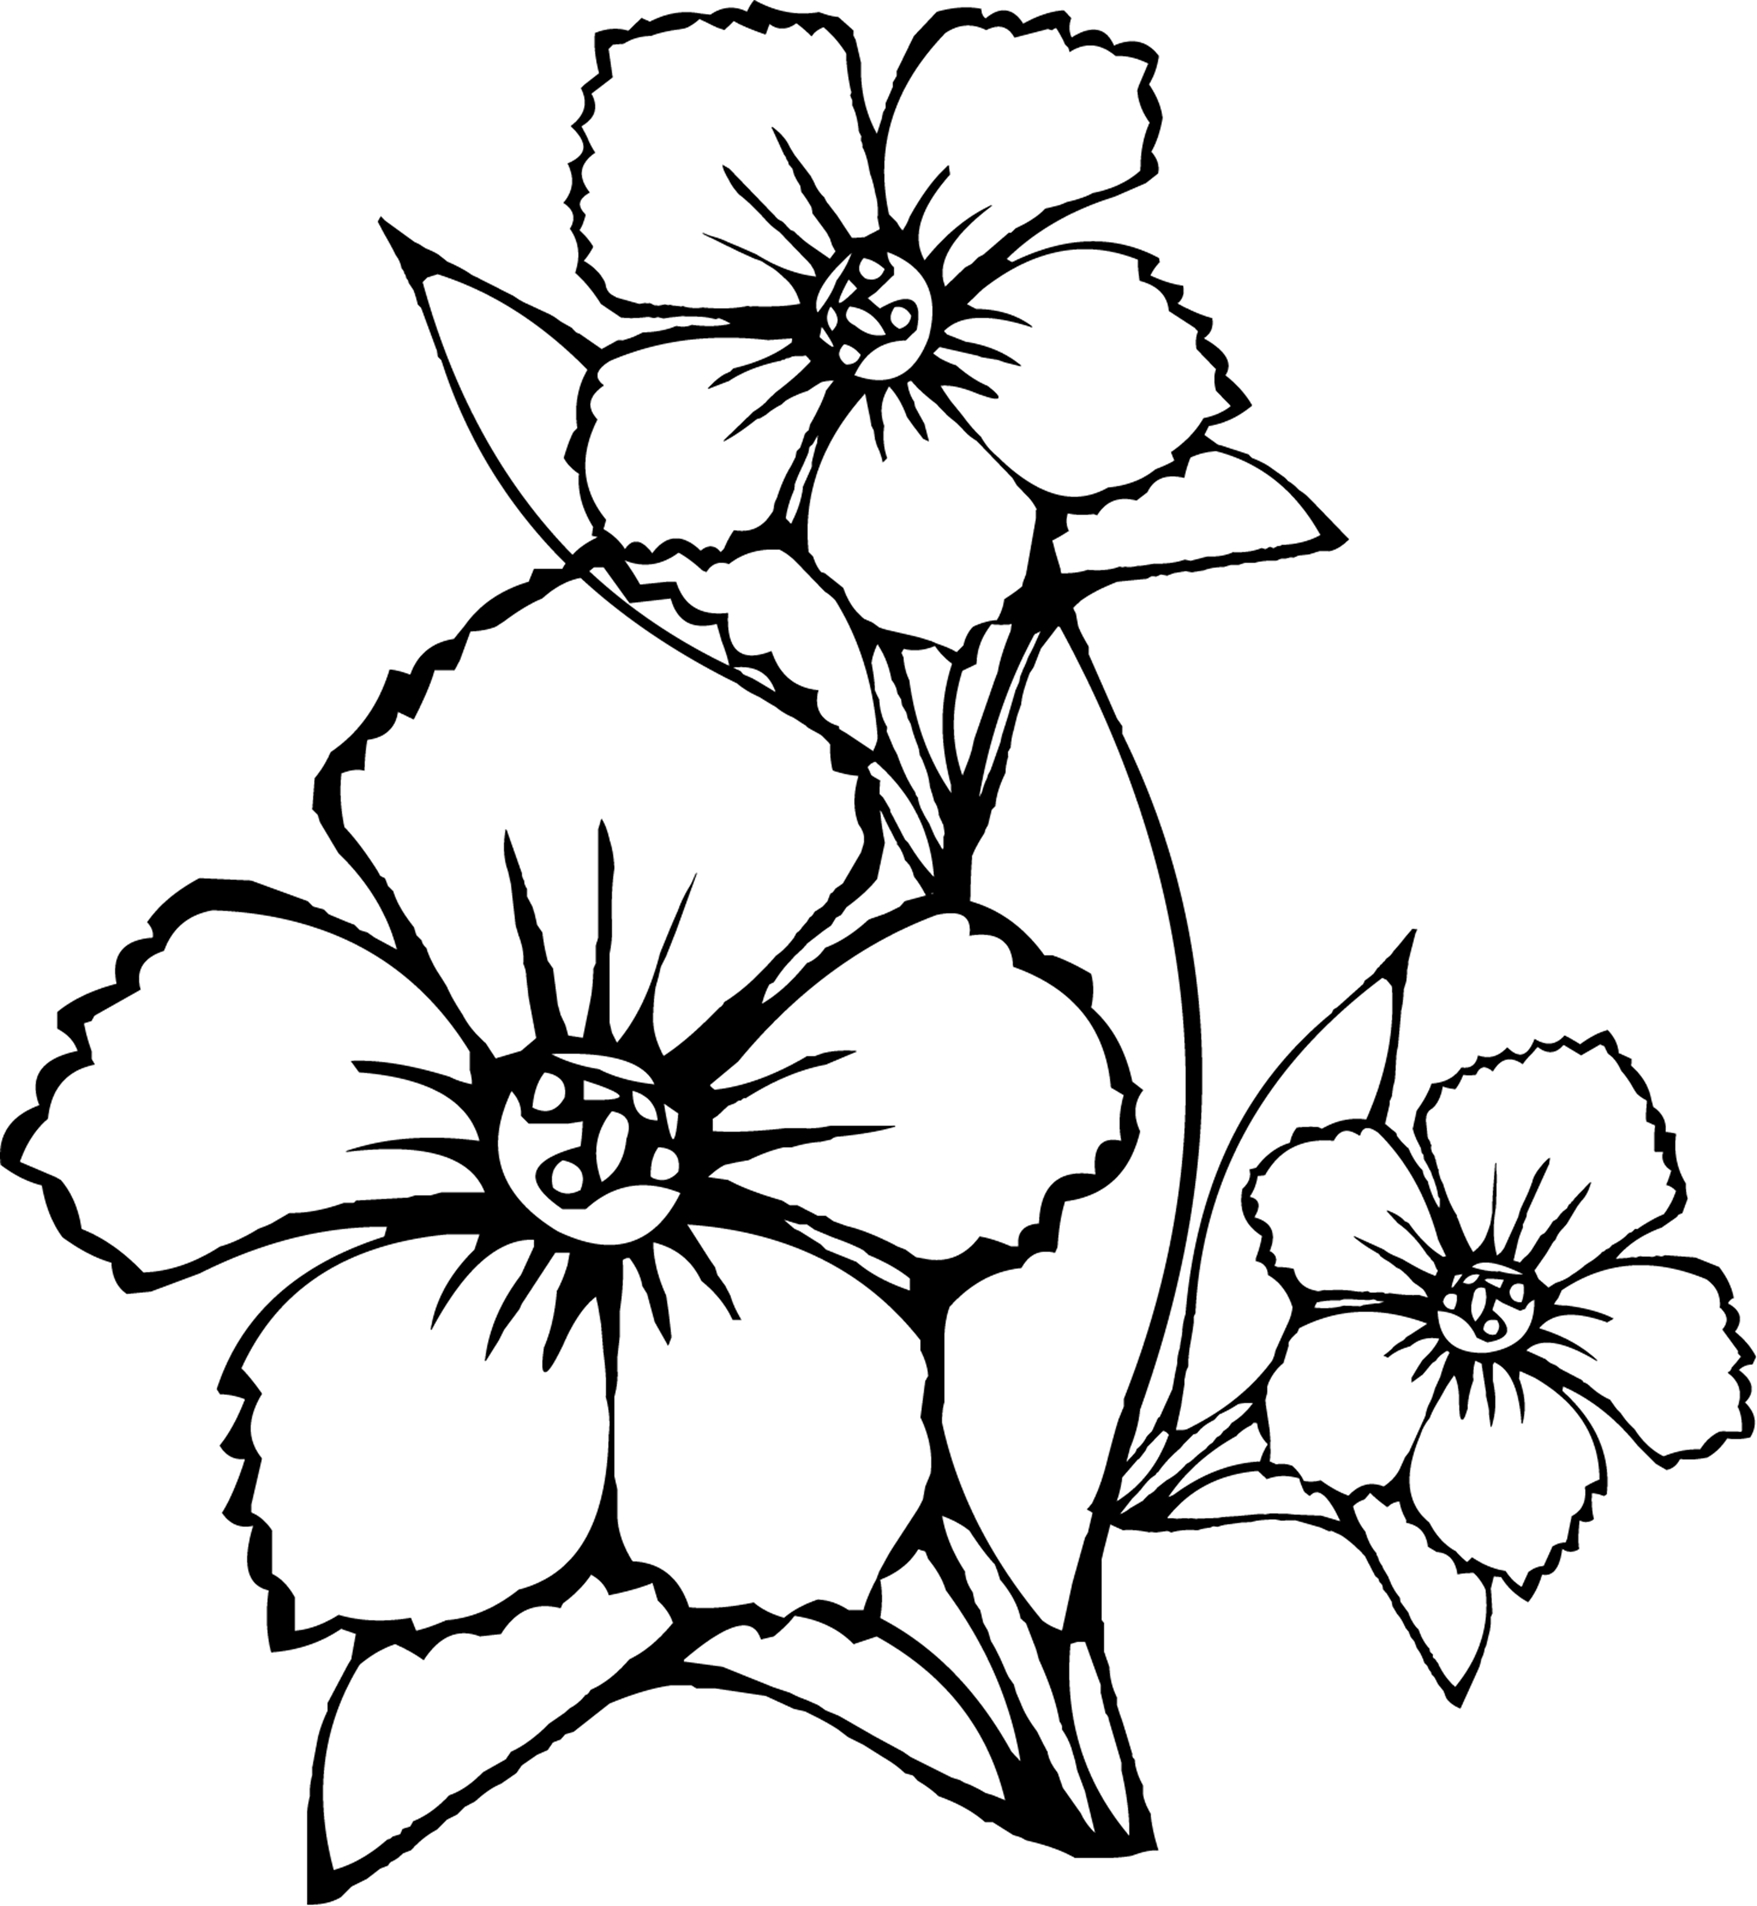 coloring picture of flower free printable flower coloring pages for kids best picture flower of coloring